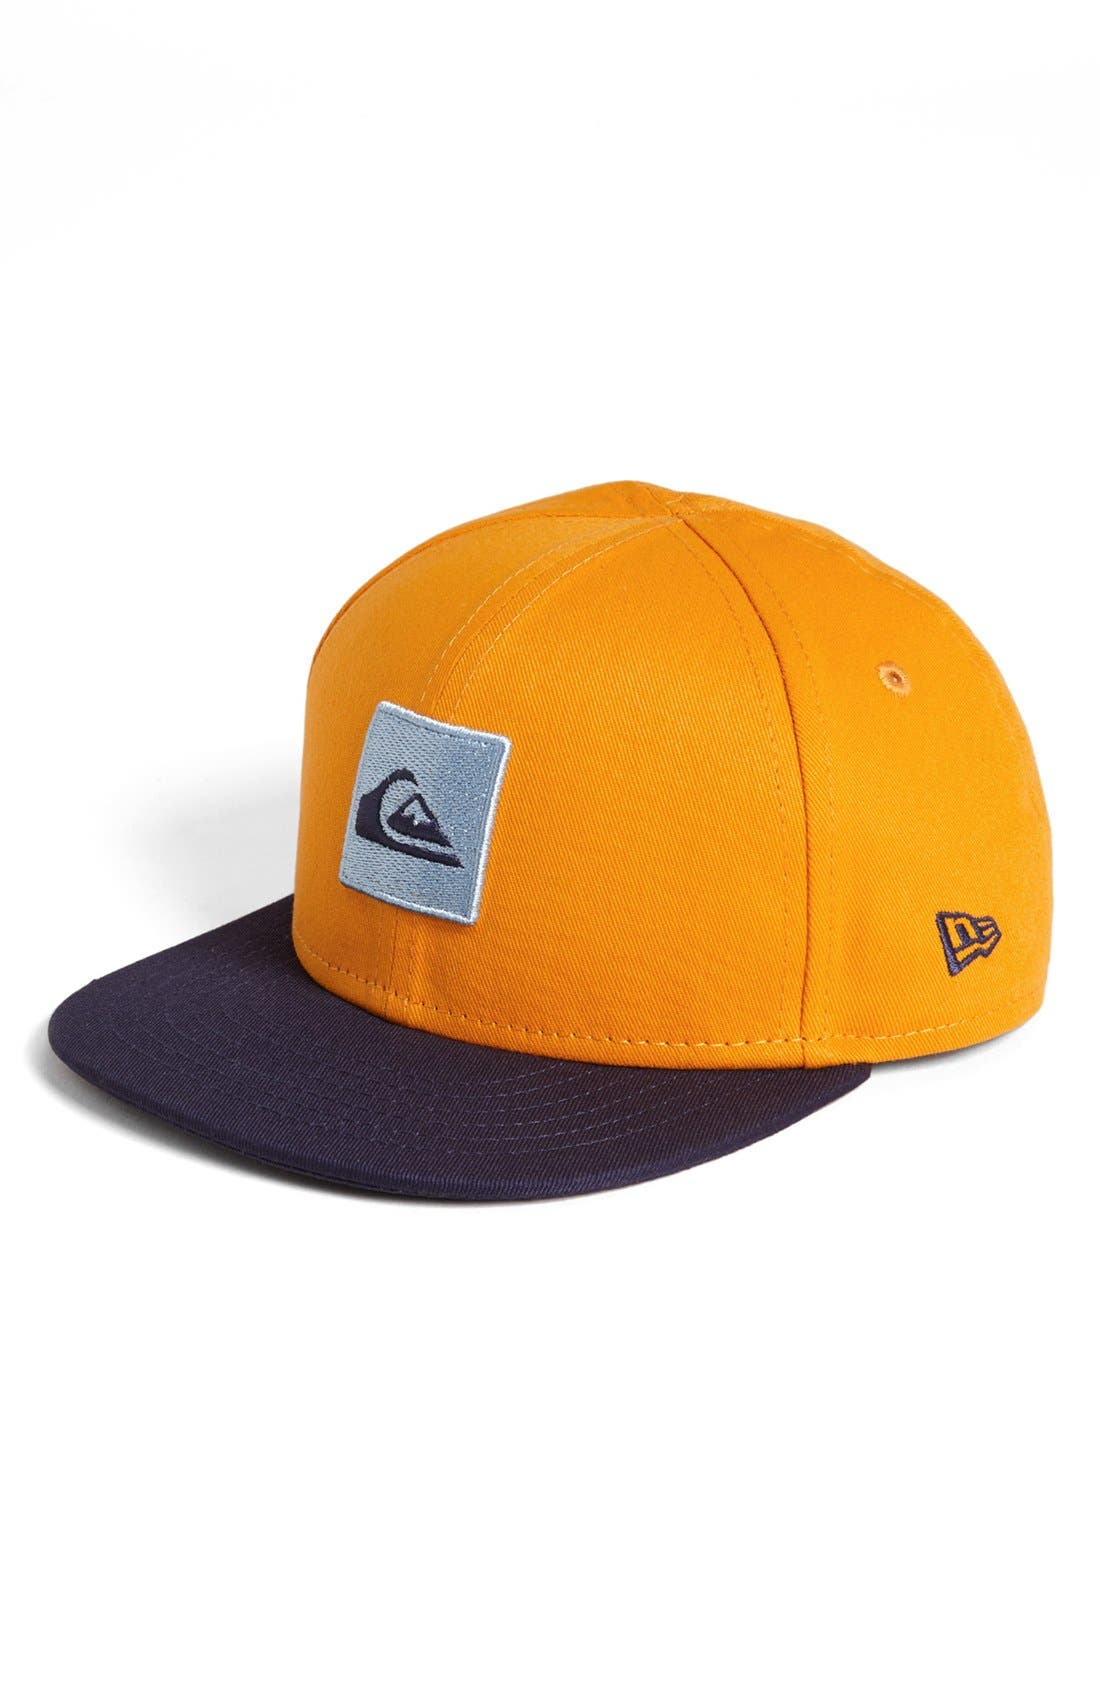 Alternate Image 1 Selected - Quiksilver 'Dug' Baseball Cap (Baby Boys)